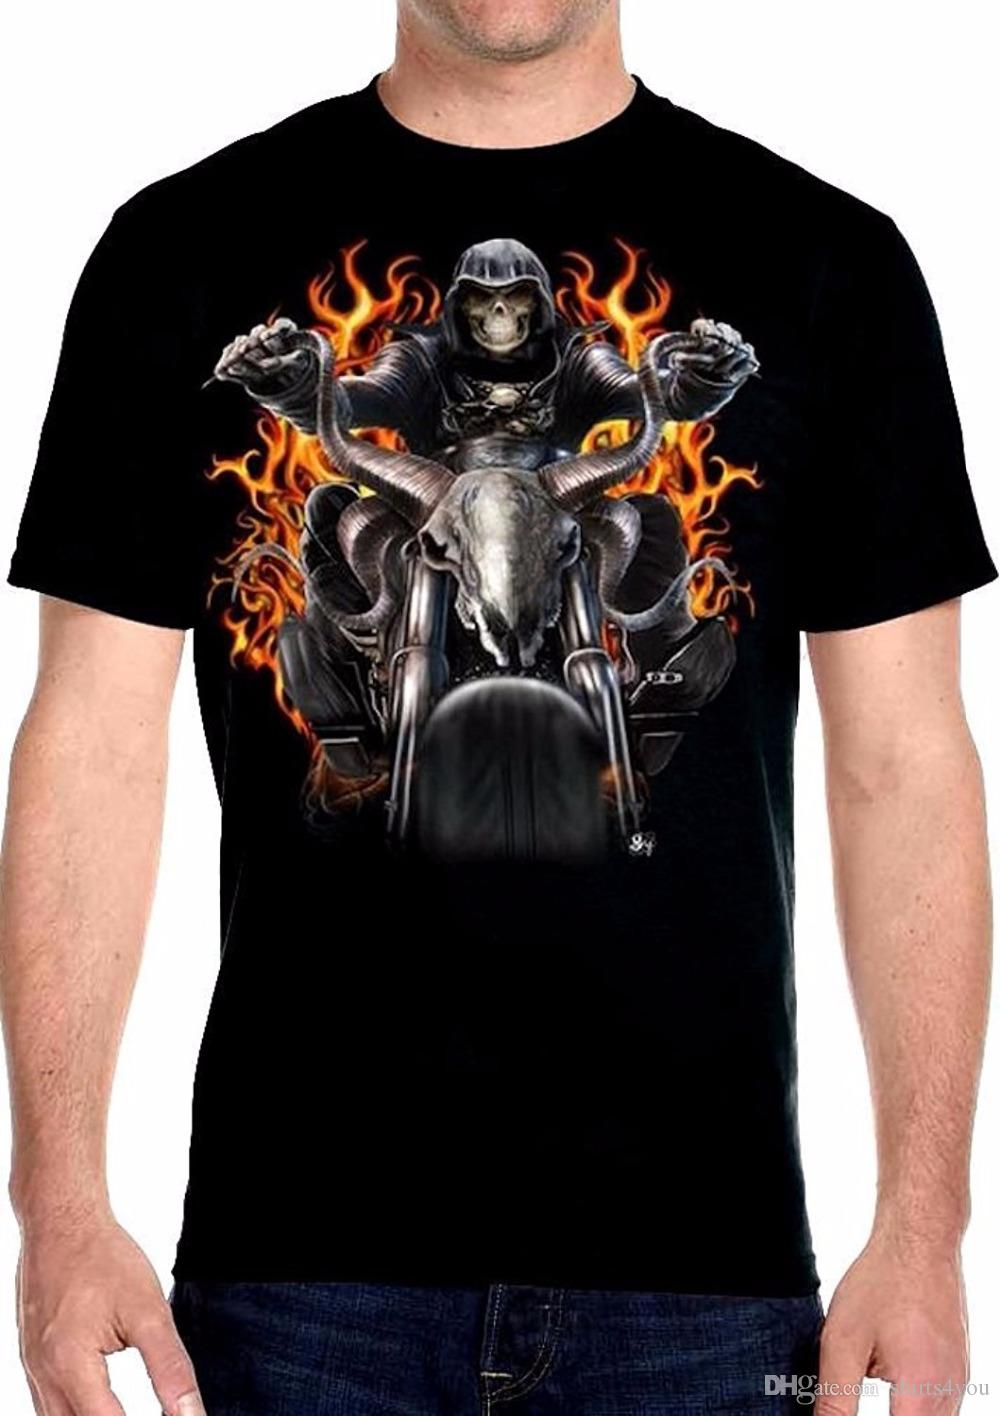 9f1a90c8 Cool Tee Shirt Designs Men's Men's Grim Reaper Riding Moto Flames Biker T- Shirt O-Neck Short Sleeve Regular Tee Shirt